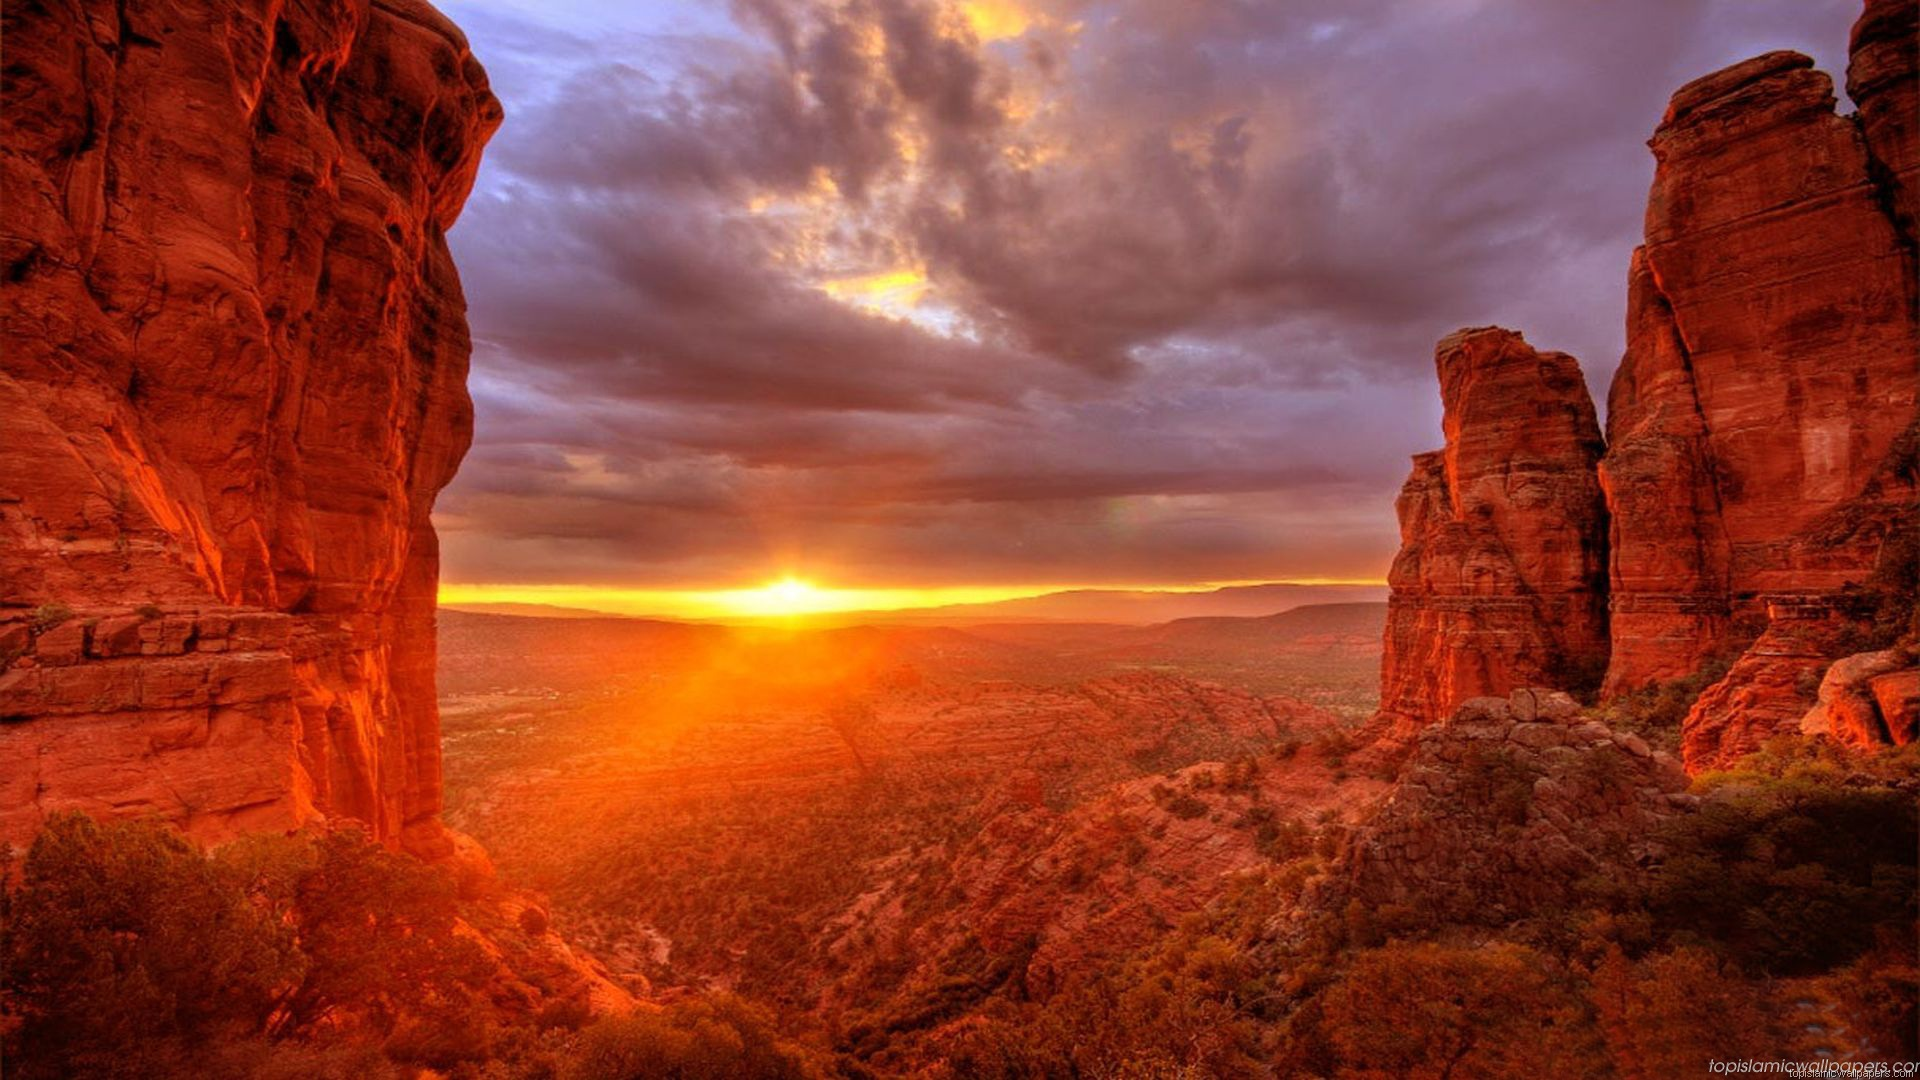 beautiful arizona sunset wallpaper 1920x1080 26789